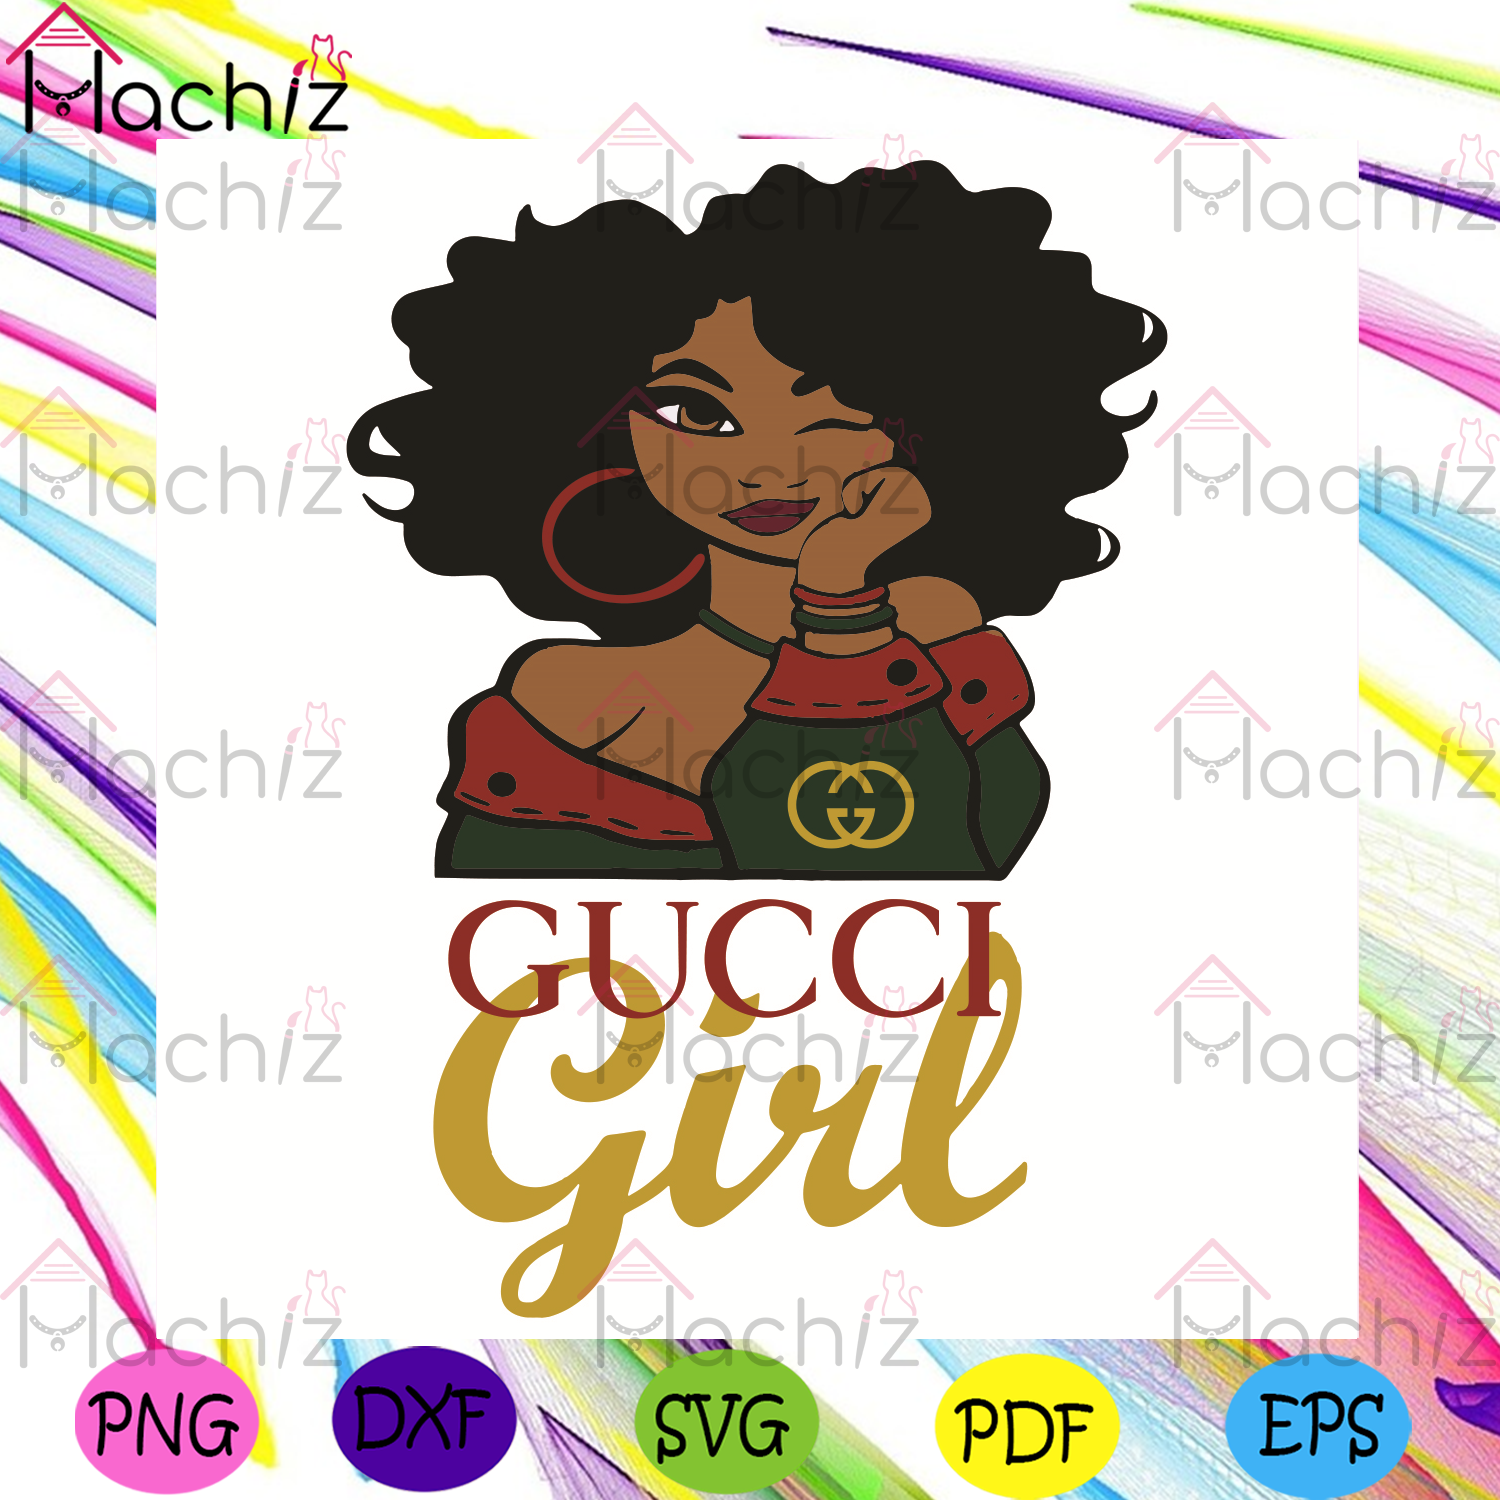 Gucci Girl Svg, Trending Svg, Gucci Svg, Gucci Black Girl Svg, Black Girl Svg, Girl Love Gucci Svg, Gucci Logo Svg, Gucci Dress Svg, Gucci Silhouette Svg, Gucci Pattern Svg, Gucci Lovers Svg, Girl Gifts Svg, Gucci Gifts Svg, Trendy Girl Svg